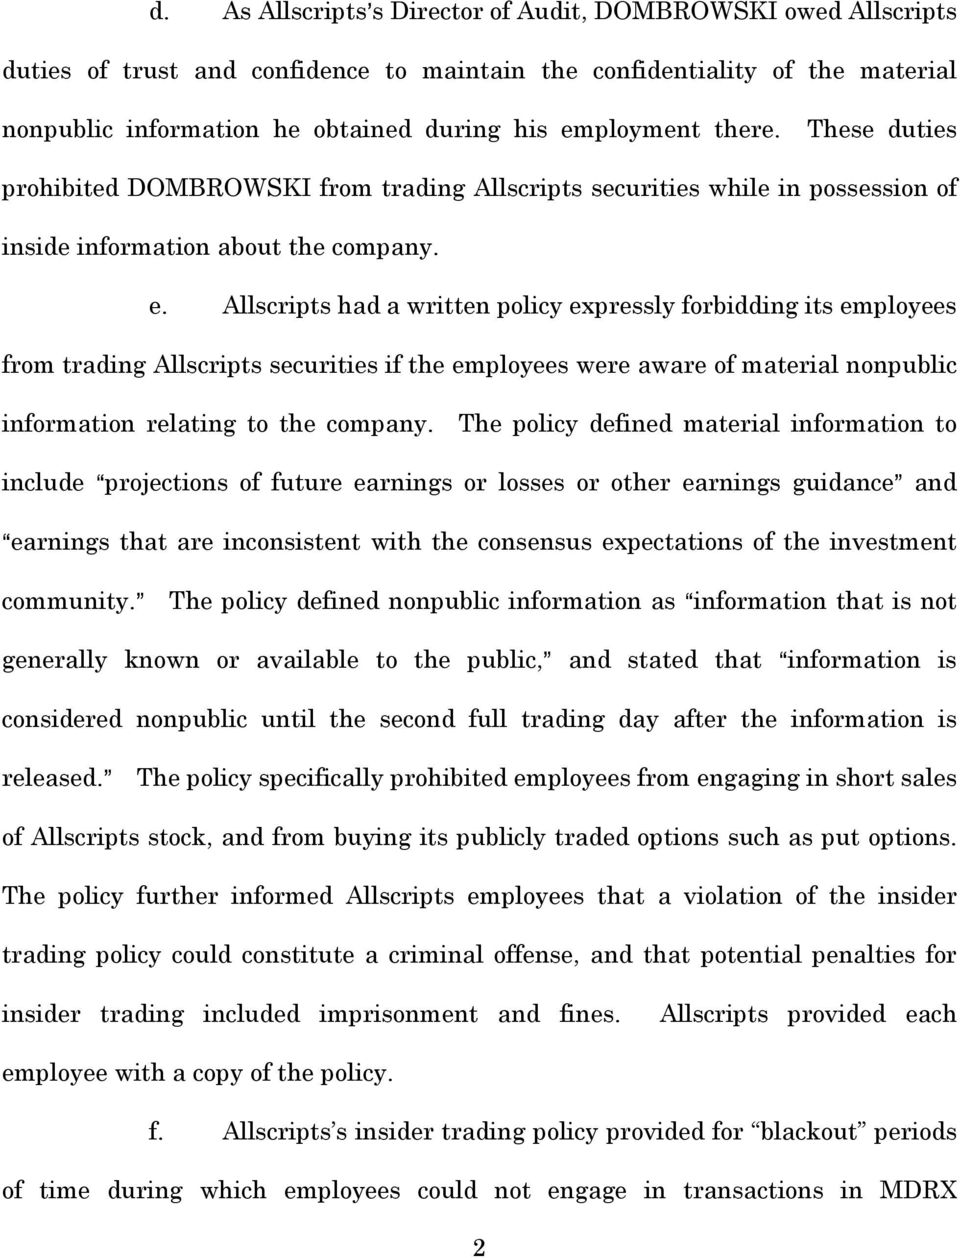 Allscripts had a written policy expressly forbidding its employees from trading Allscripts securities if the employees were aware of material nonpublic information relating to the company.